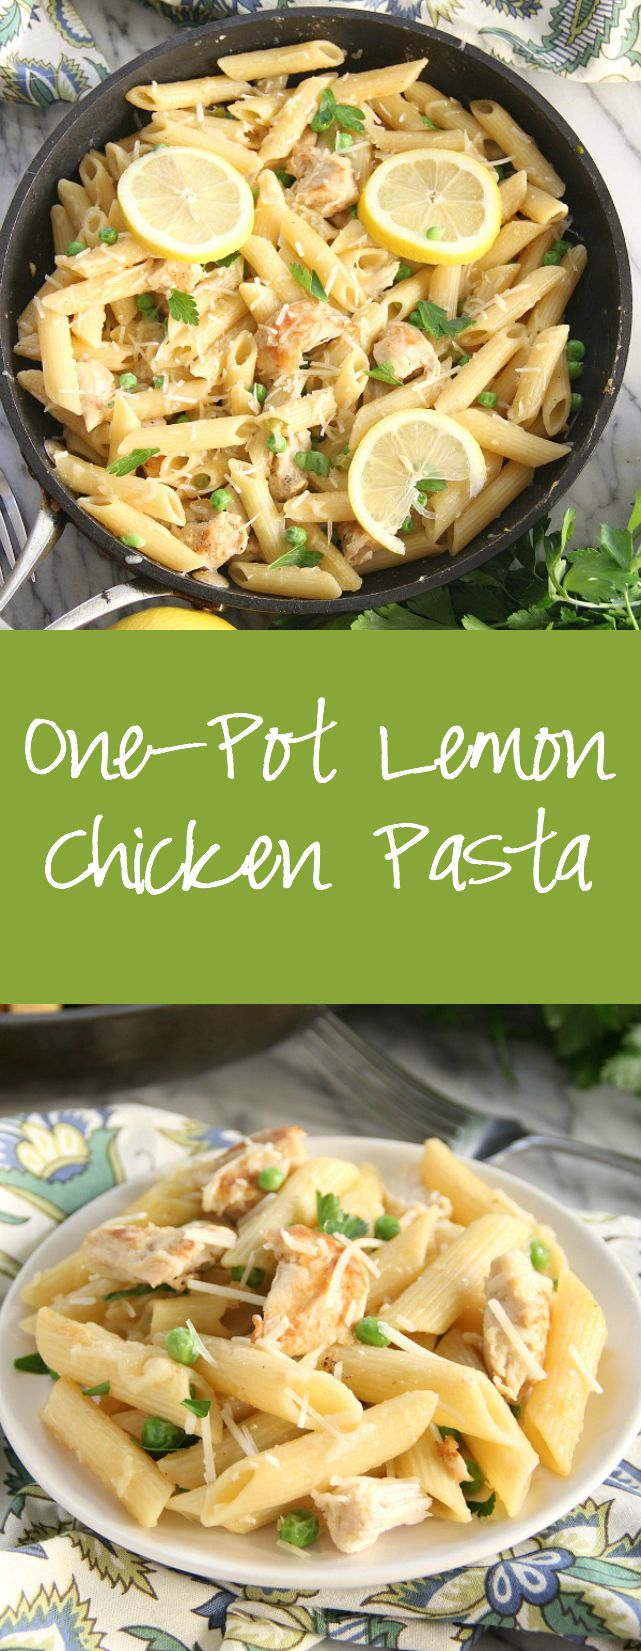 One-Pot Lemon Chicken Pasta - Eat. Drink. Love. #easyonepotmeals